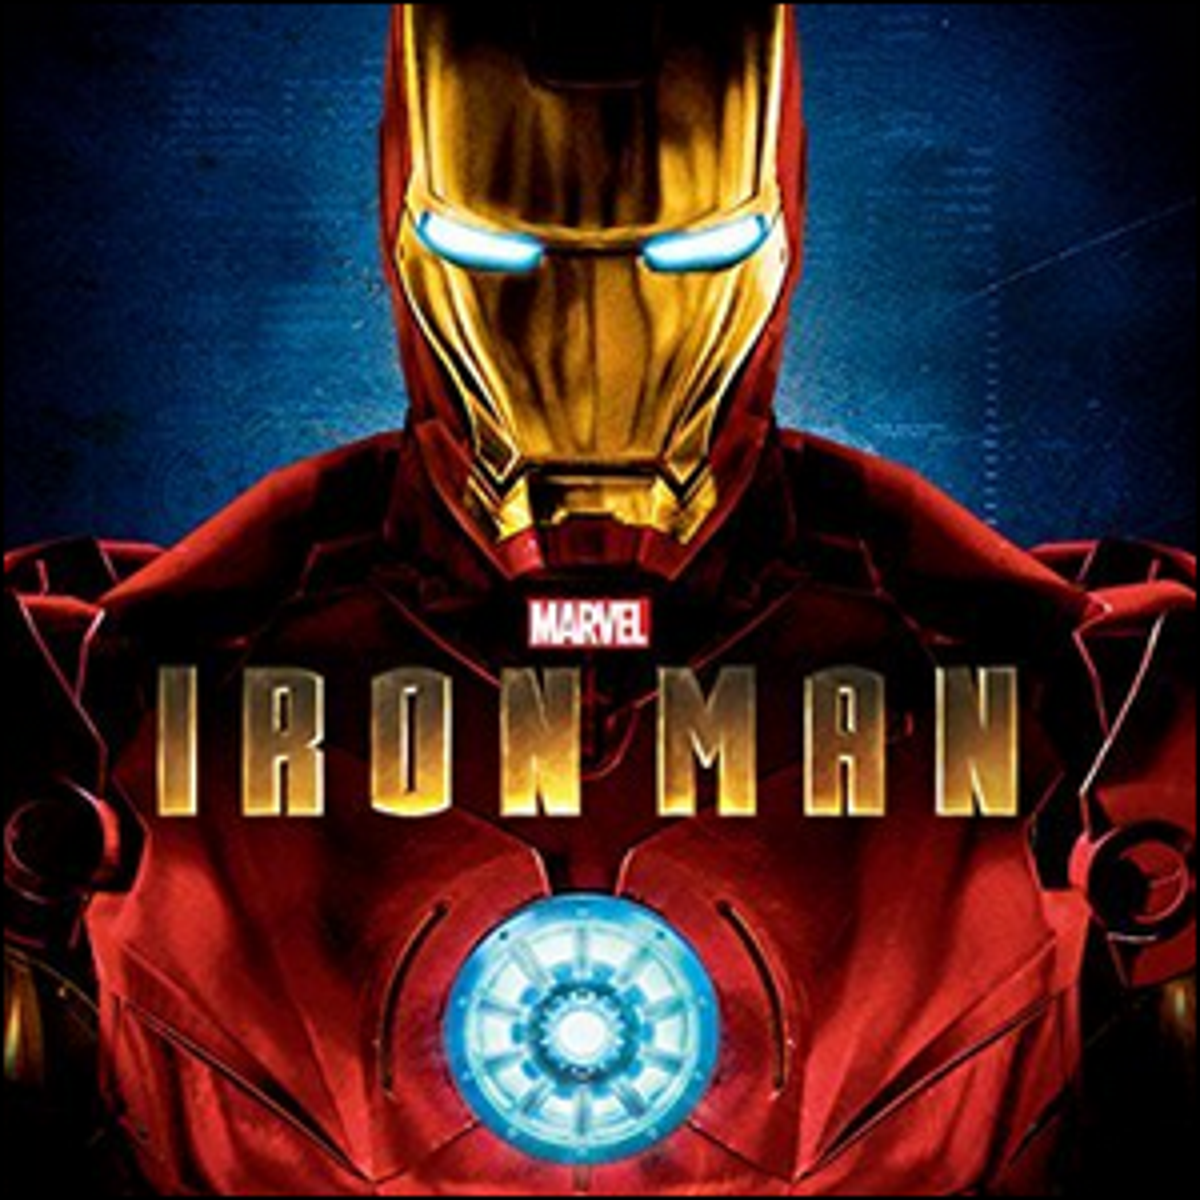 The movie poster artwork for the first Iron Man movie.